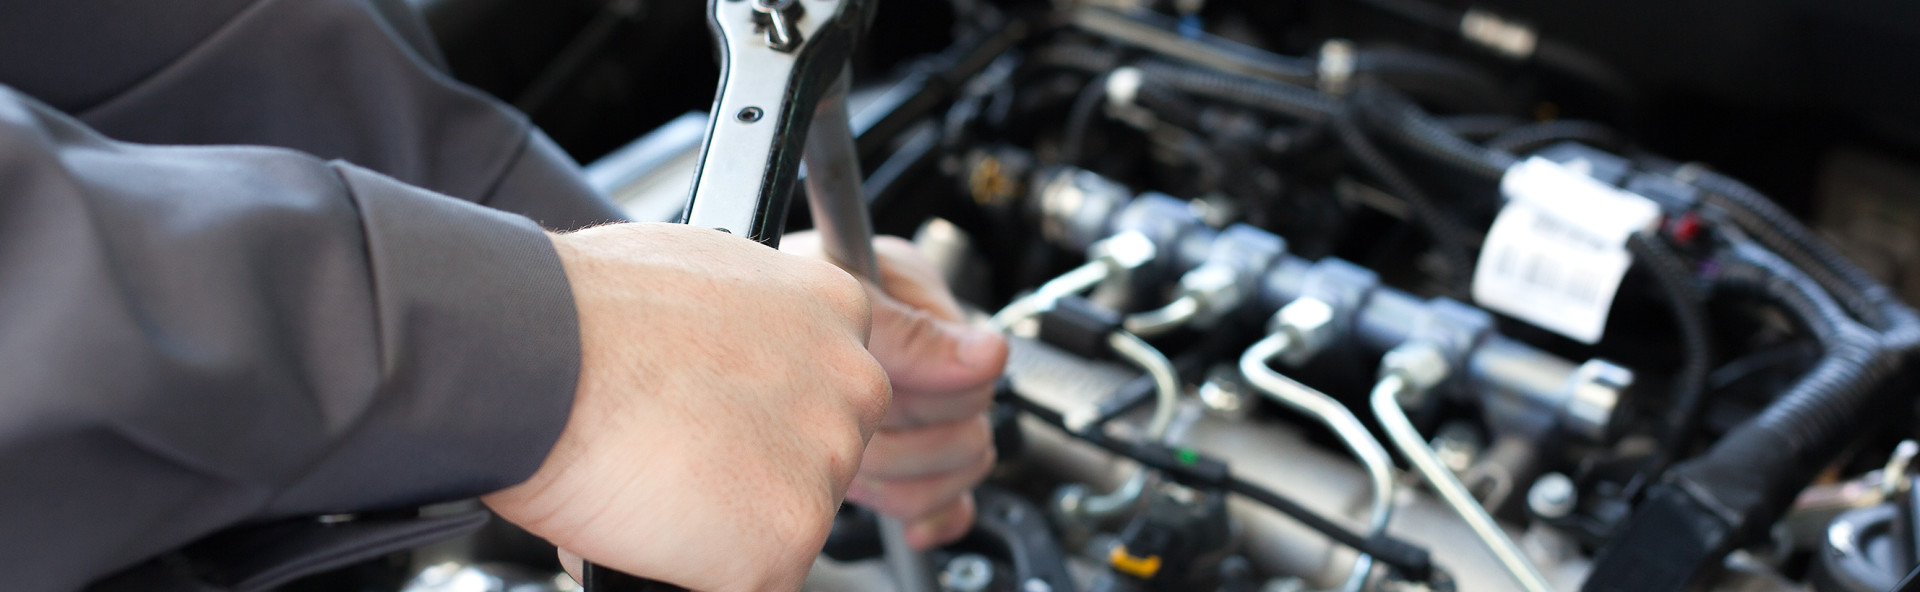 Quality Auto Specialist Santa Ana CA Maintenance Background